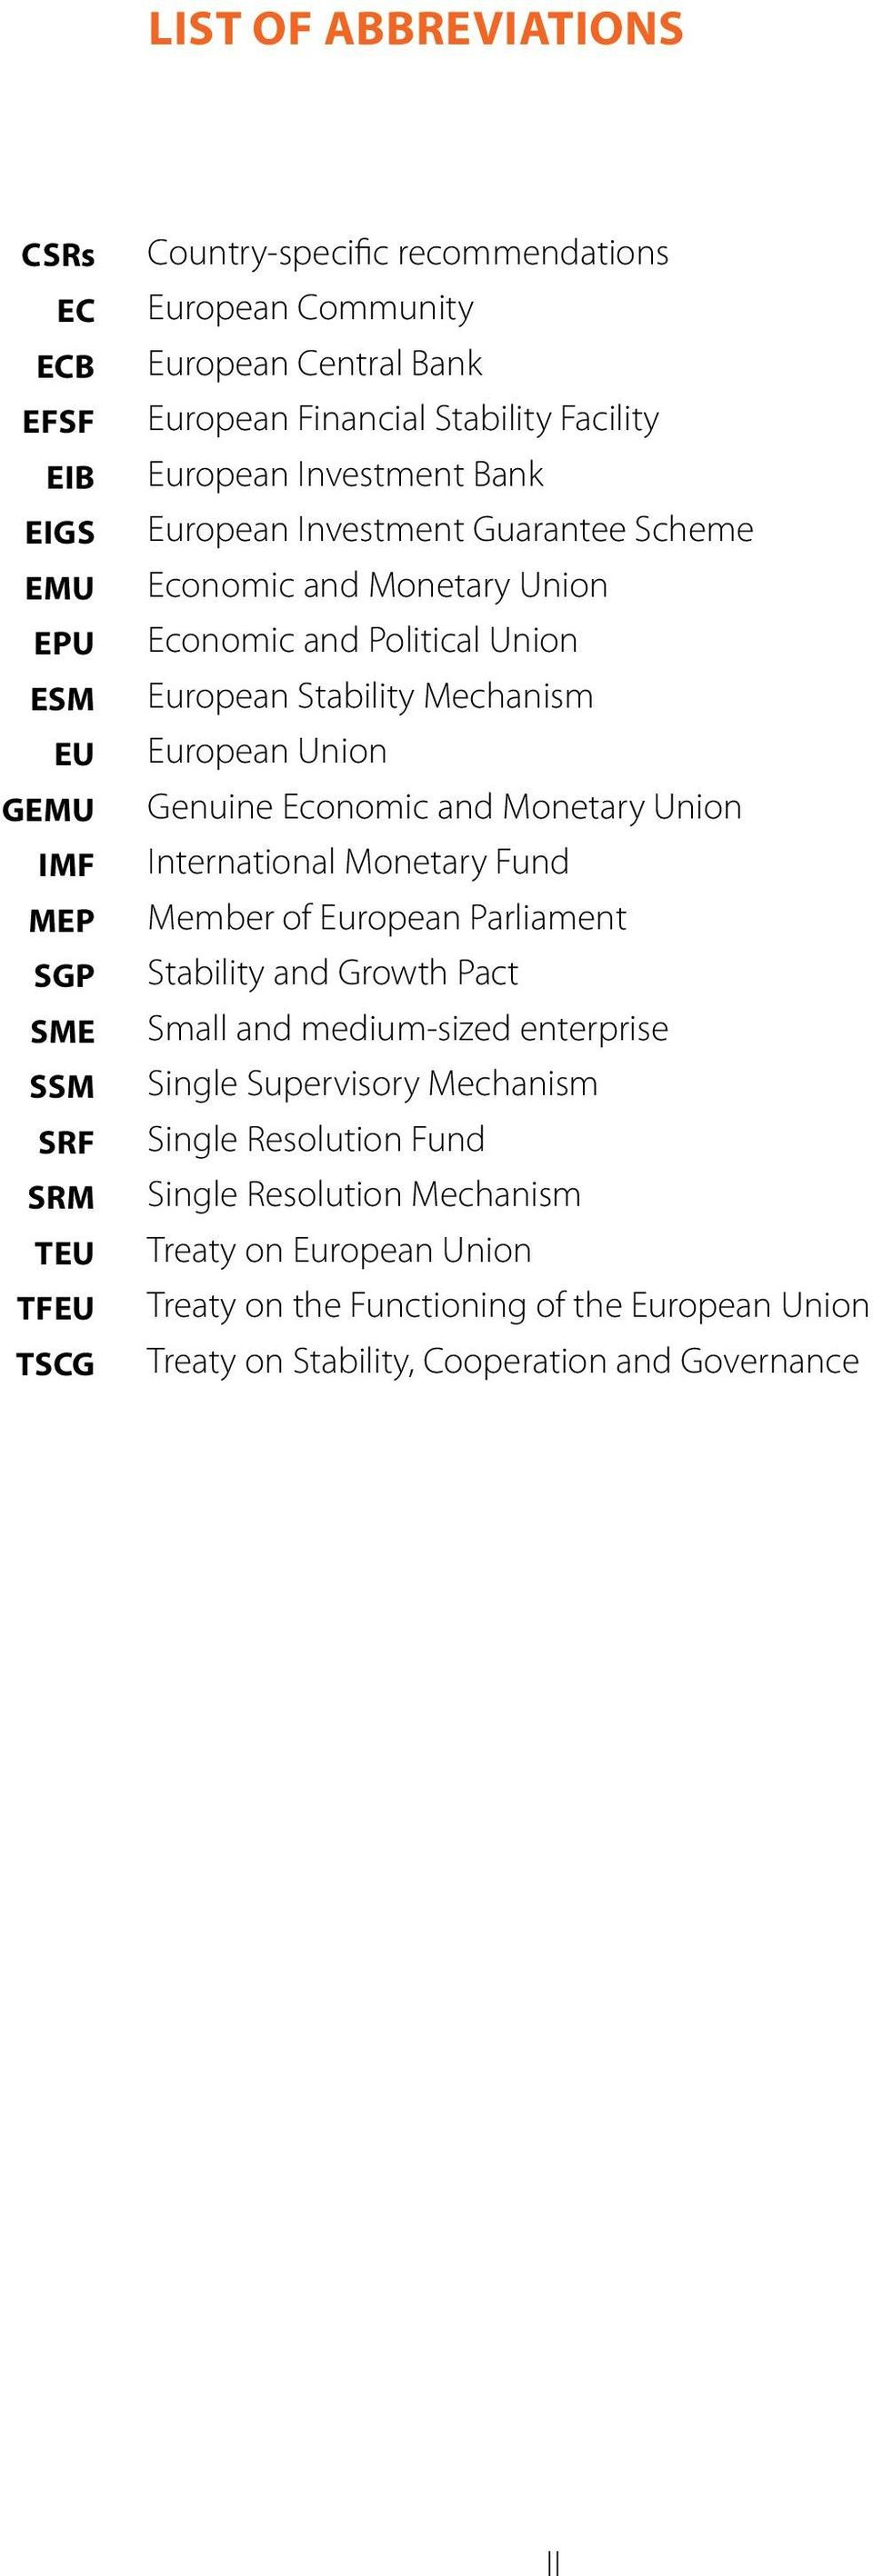 European Union Genuine Economic and Monetary Union International Monetary Fund Member of European Parliament Stability and Growth Pact Small and medium-sized enterprise Single